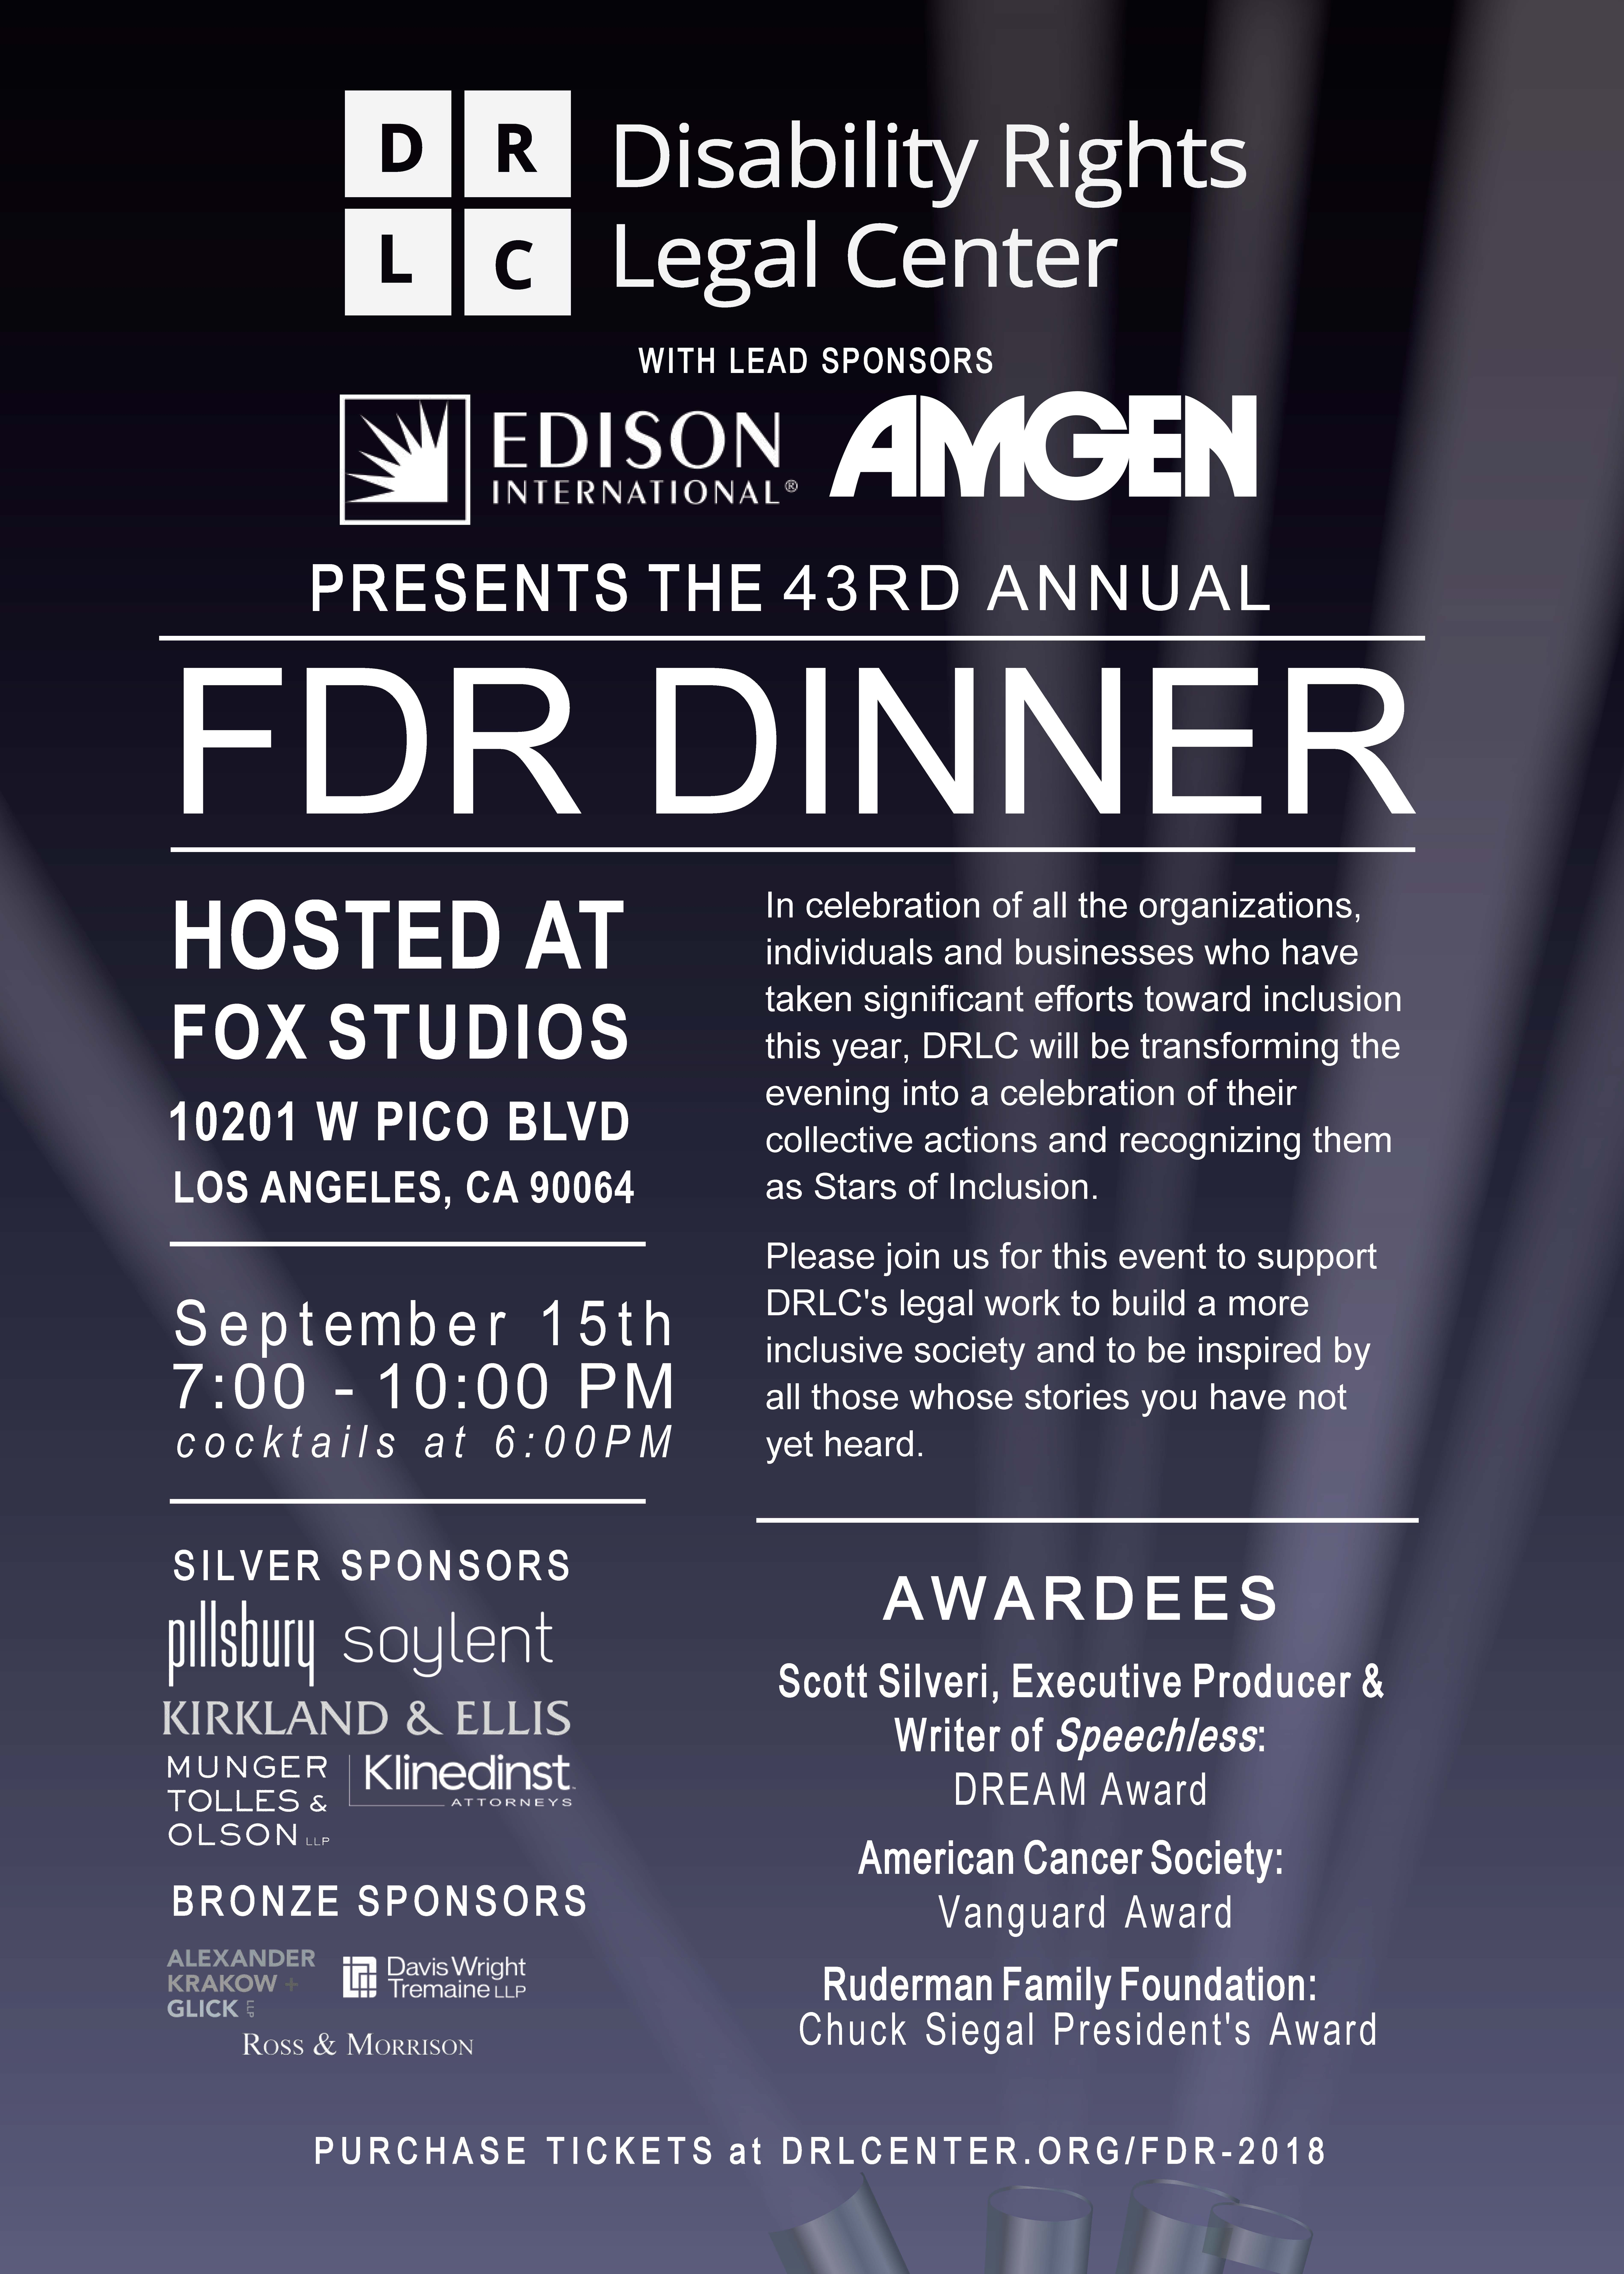 The Disability Rights Legal Center, with lead sponsors, Edison International and Amgen, presents the 43rd Annual FDR Dinner – hosted at Fox Studios, 10201 W Pico Boulevard, Los Angeles, CA 90064, on September 15th, 7:00-10:00 p.m. Cocktail hour begins at 6:00 p.m. In celebration of all the organizations, individuals and businesses who have taken significant efforts toward inclusion this year, DRLC will be transforming the evening into a celebration of their collective actions and recognizing them as Stars of Inclusion. Please join us for this event to support DRLC's legal work to build a more inclusive society and to be inspired by all those whose stories you have not yet heard. Purchase tickets at drlcenter.org/fdr-2018. AWARDEES Scott Silveri, Executive Producer & Writer of Speechless: DREAM Award American Cancer Society: Vanguard Award Ruderman Family Foundation: Chuck Siegal President's Award SILVER SPONSORS Pilsbury Soylent Kirkland & Ellis Munger, Tolles & Olson Klinedist Attorneys BRONZE SPONSORS Alexander, Krakow & Glick Davis Wright Tremaine Ross & Morrison